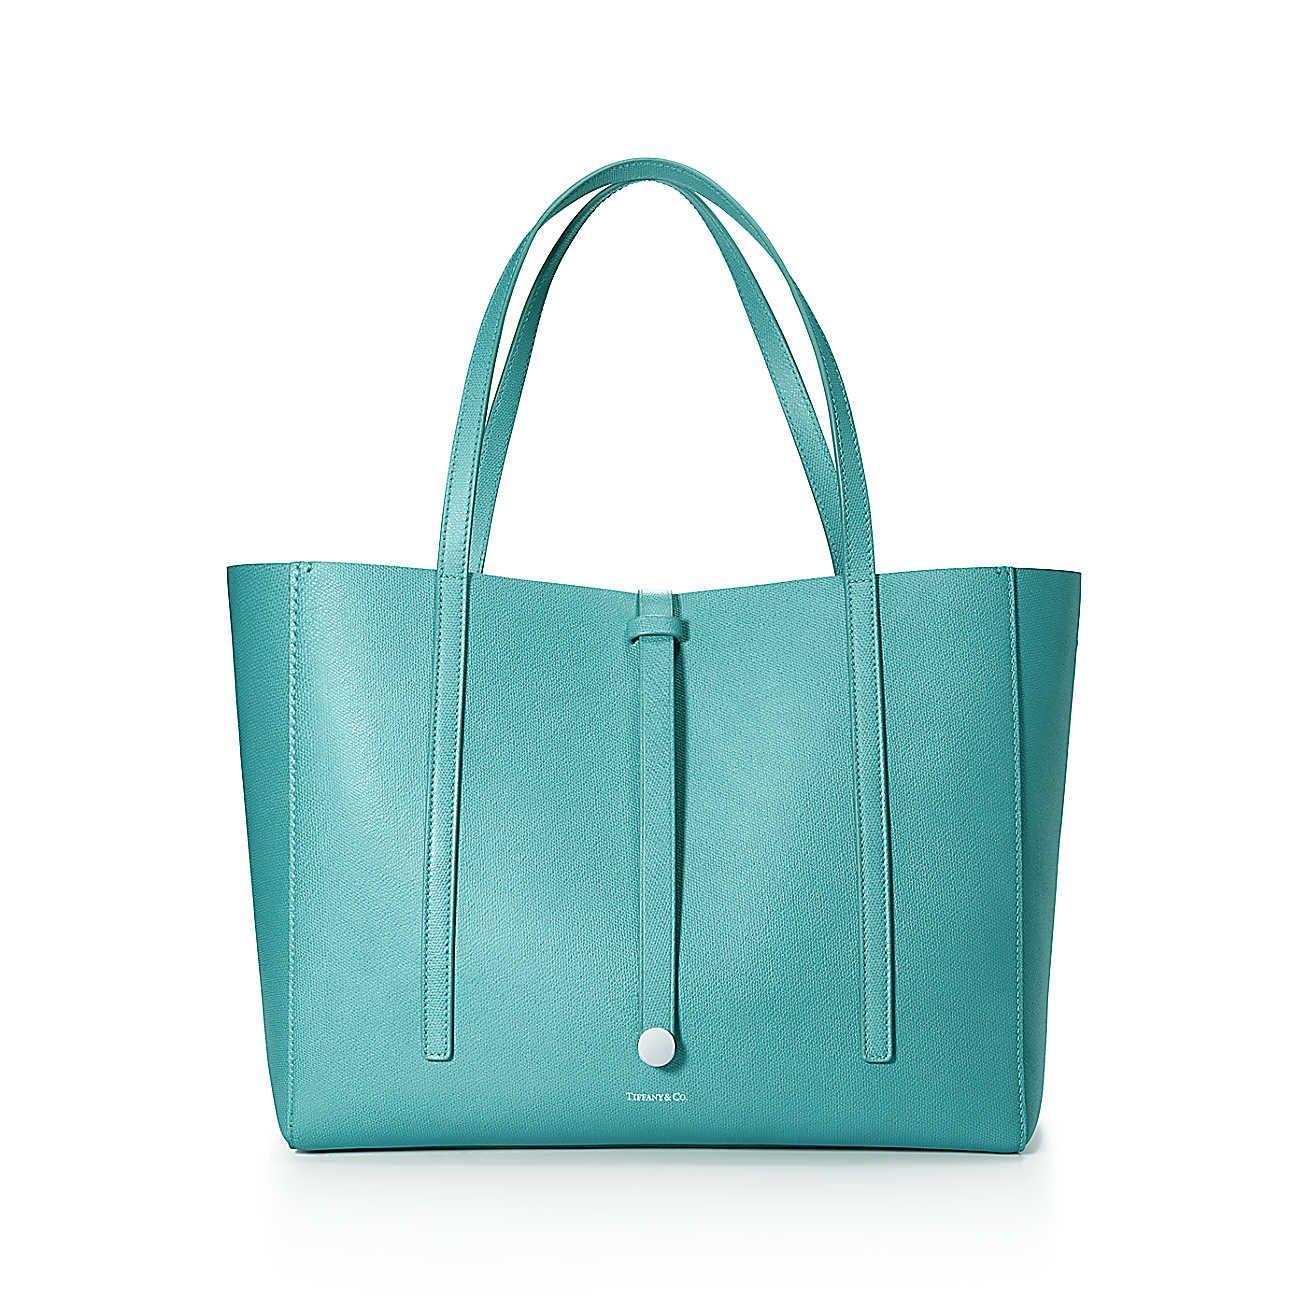 b2fd0b0eca1 Reader tote in Tiffany Blue® grain leather. More colors available ...